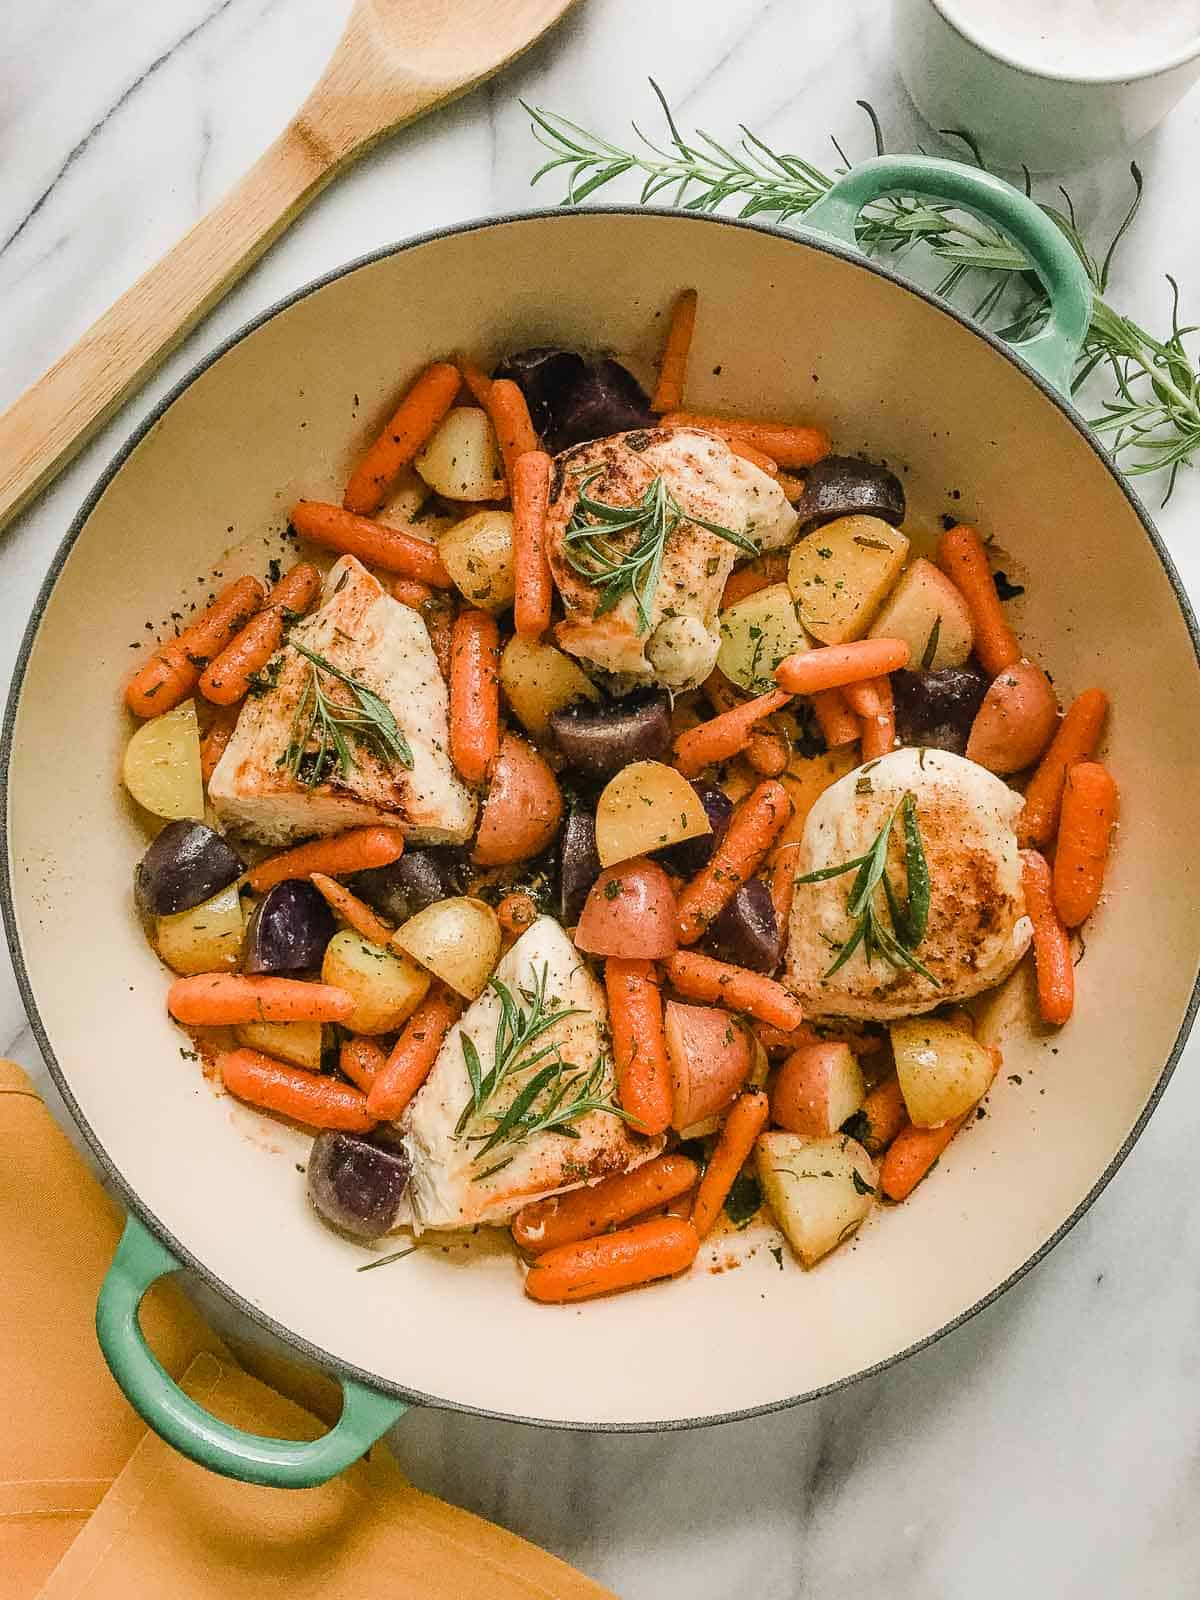 Rosemary chicken with potatoes and carrots.